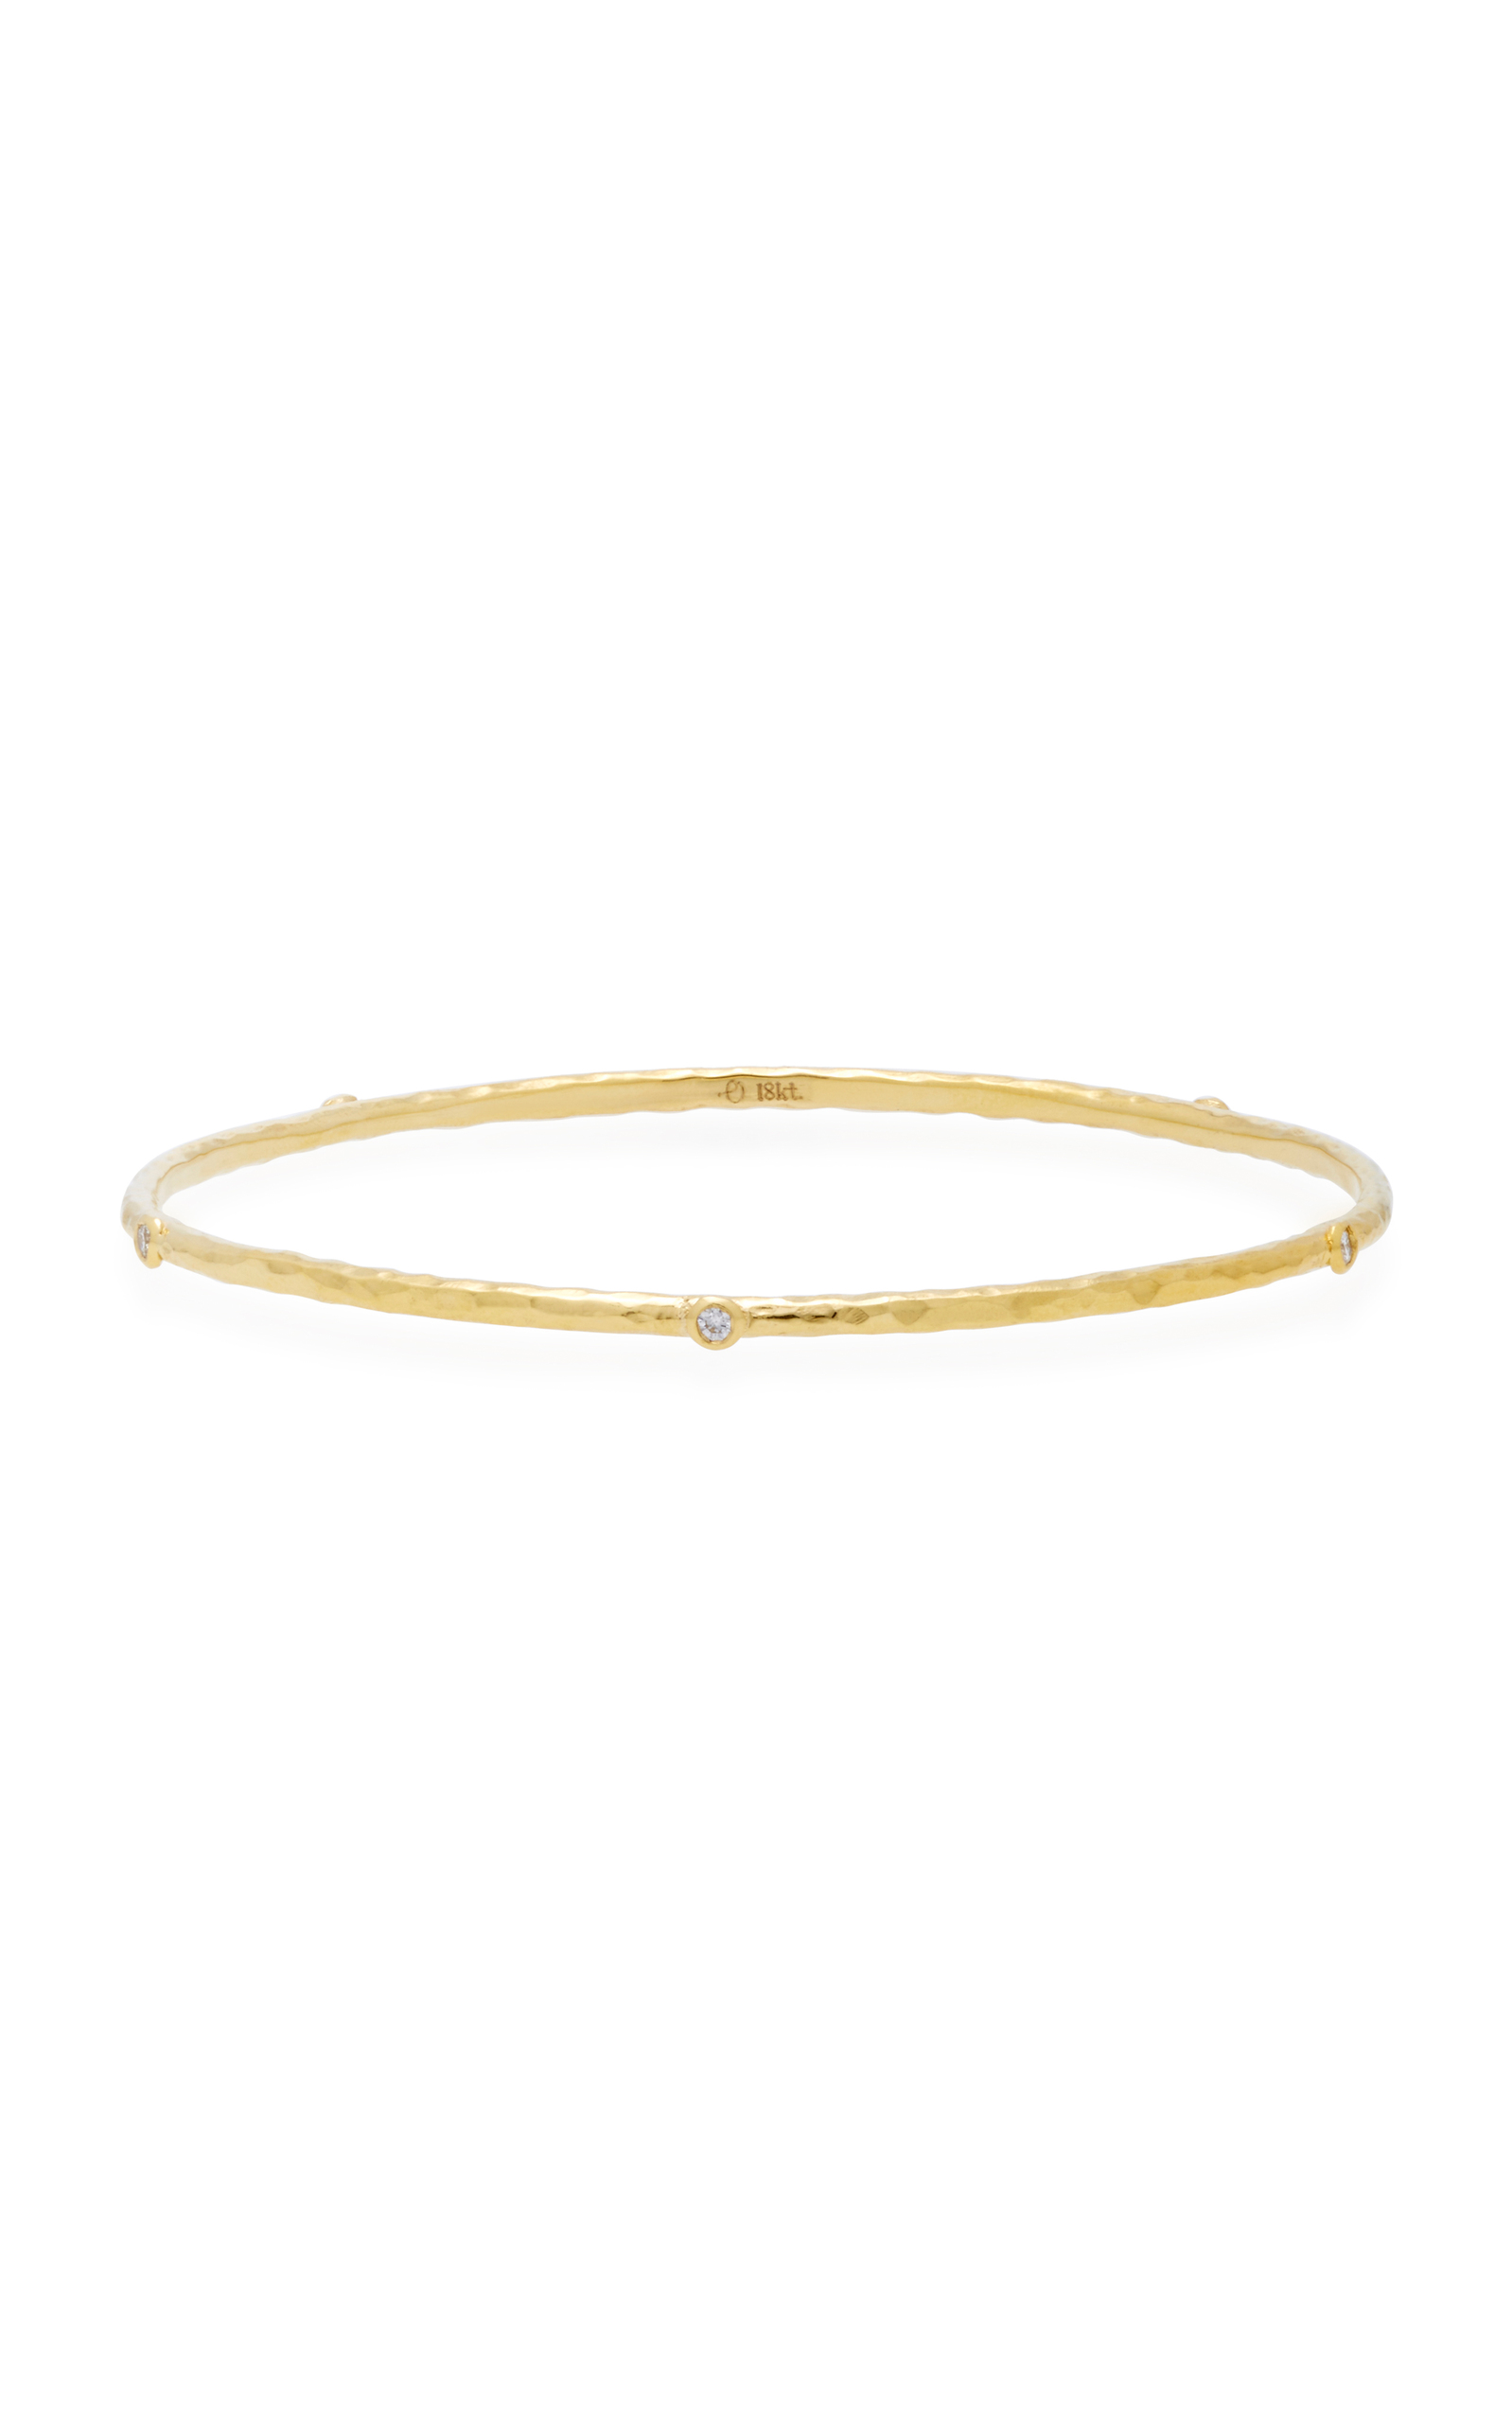 gold bracelet her diamond in with white thin shop bracelets bangles collections once bangle a upon baguettes